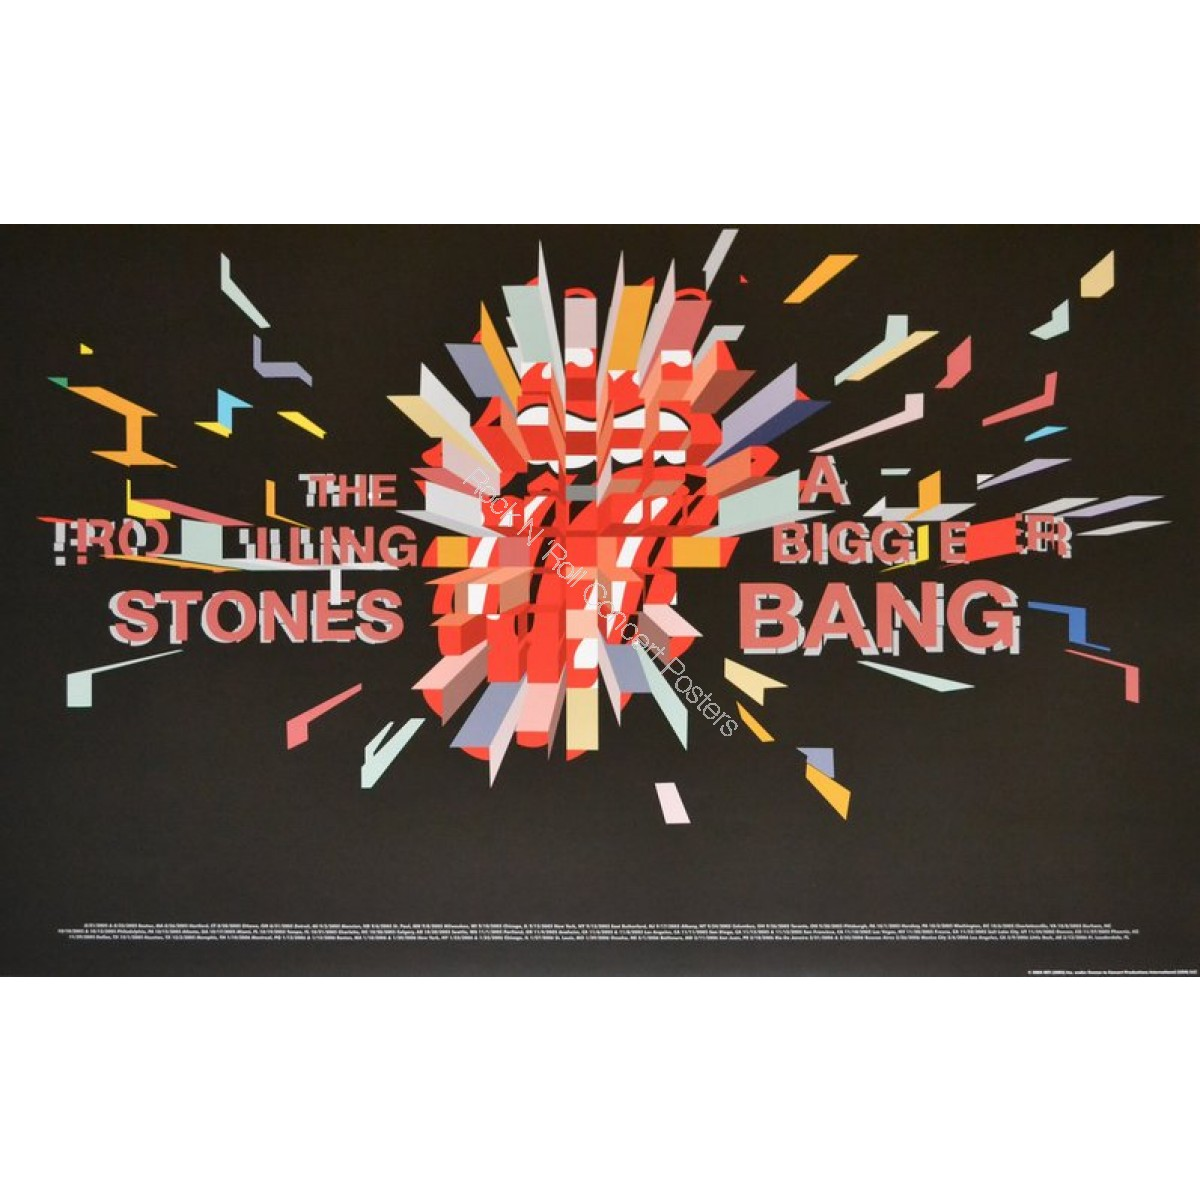 The Rolling Stones Fall 2005 Spring 2006 North American Tour Limited Edition Poster